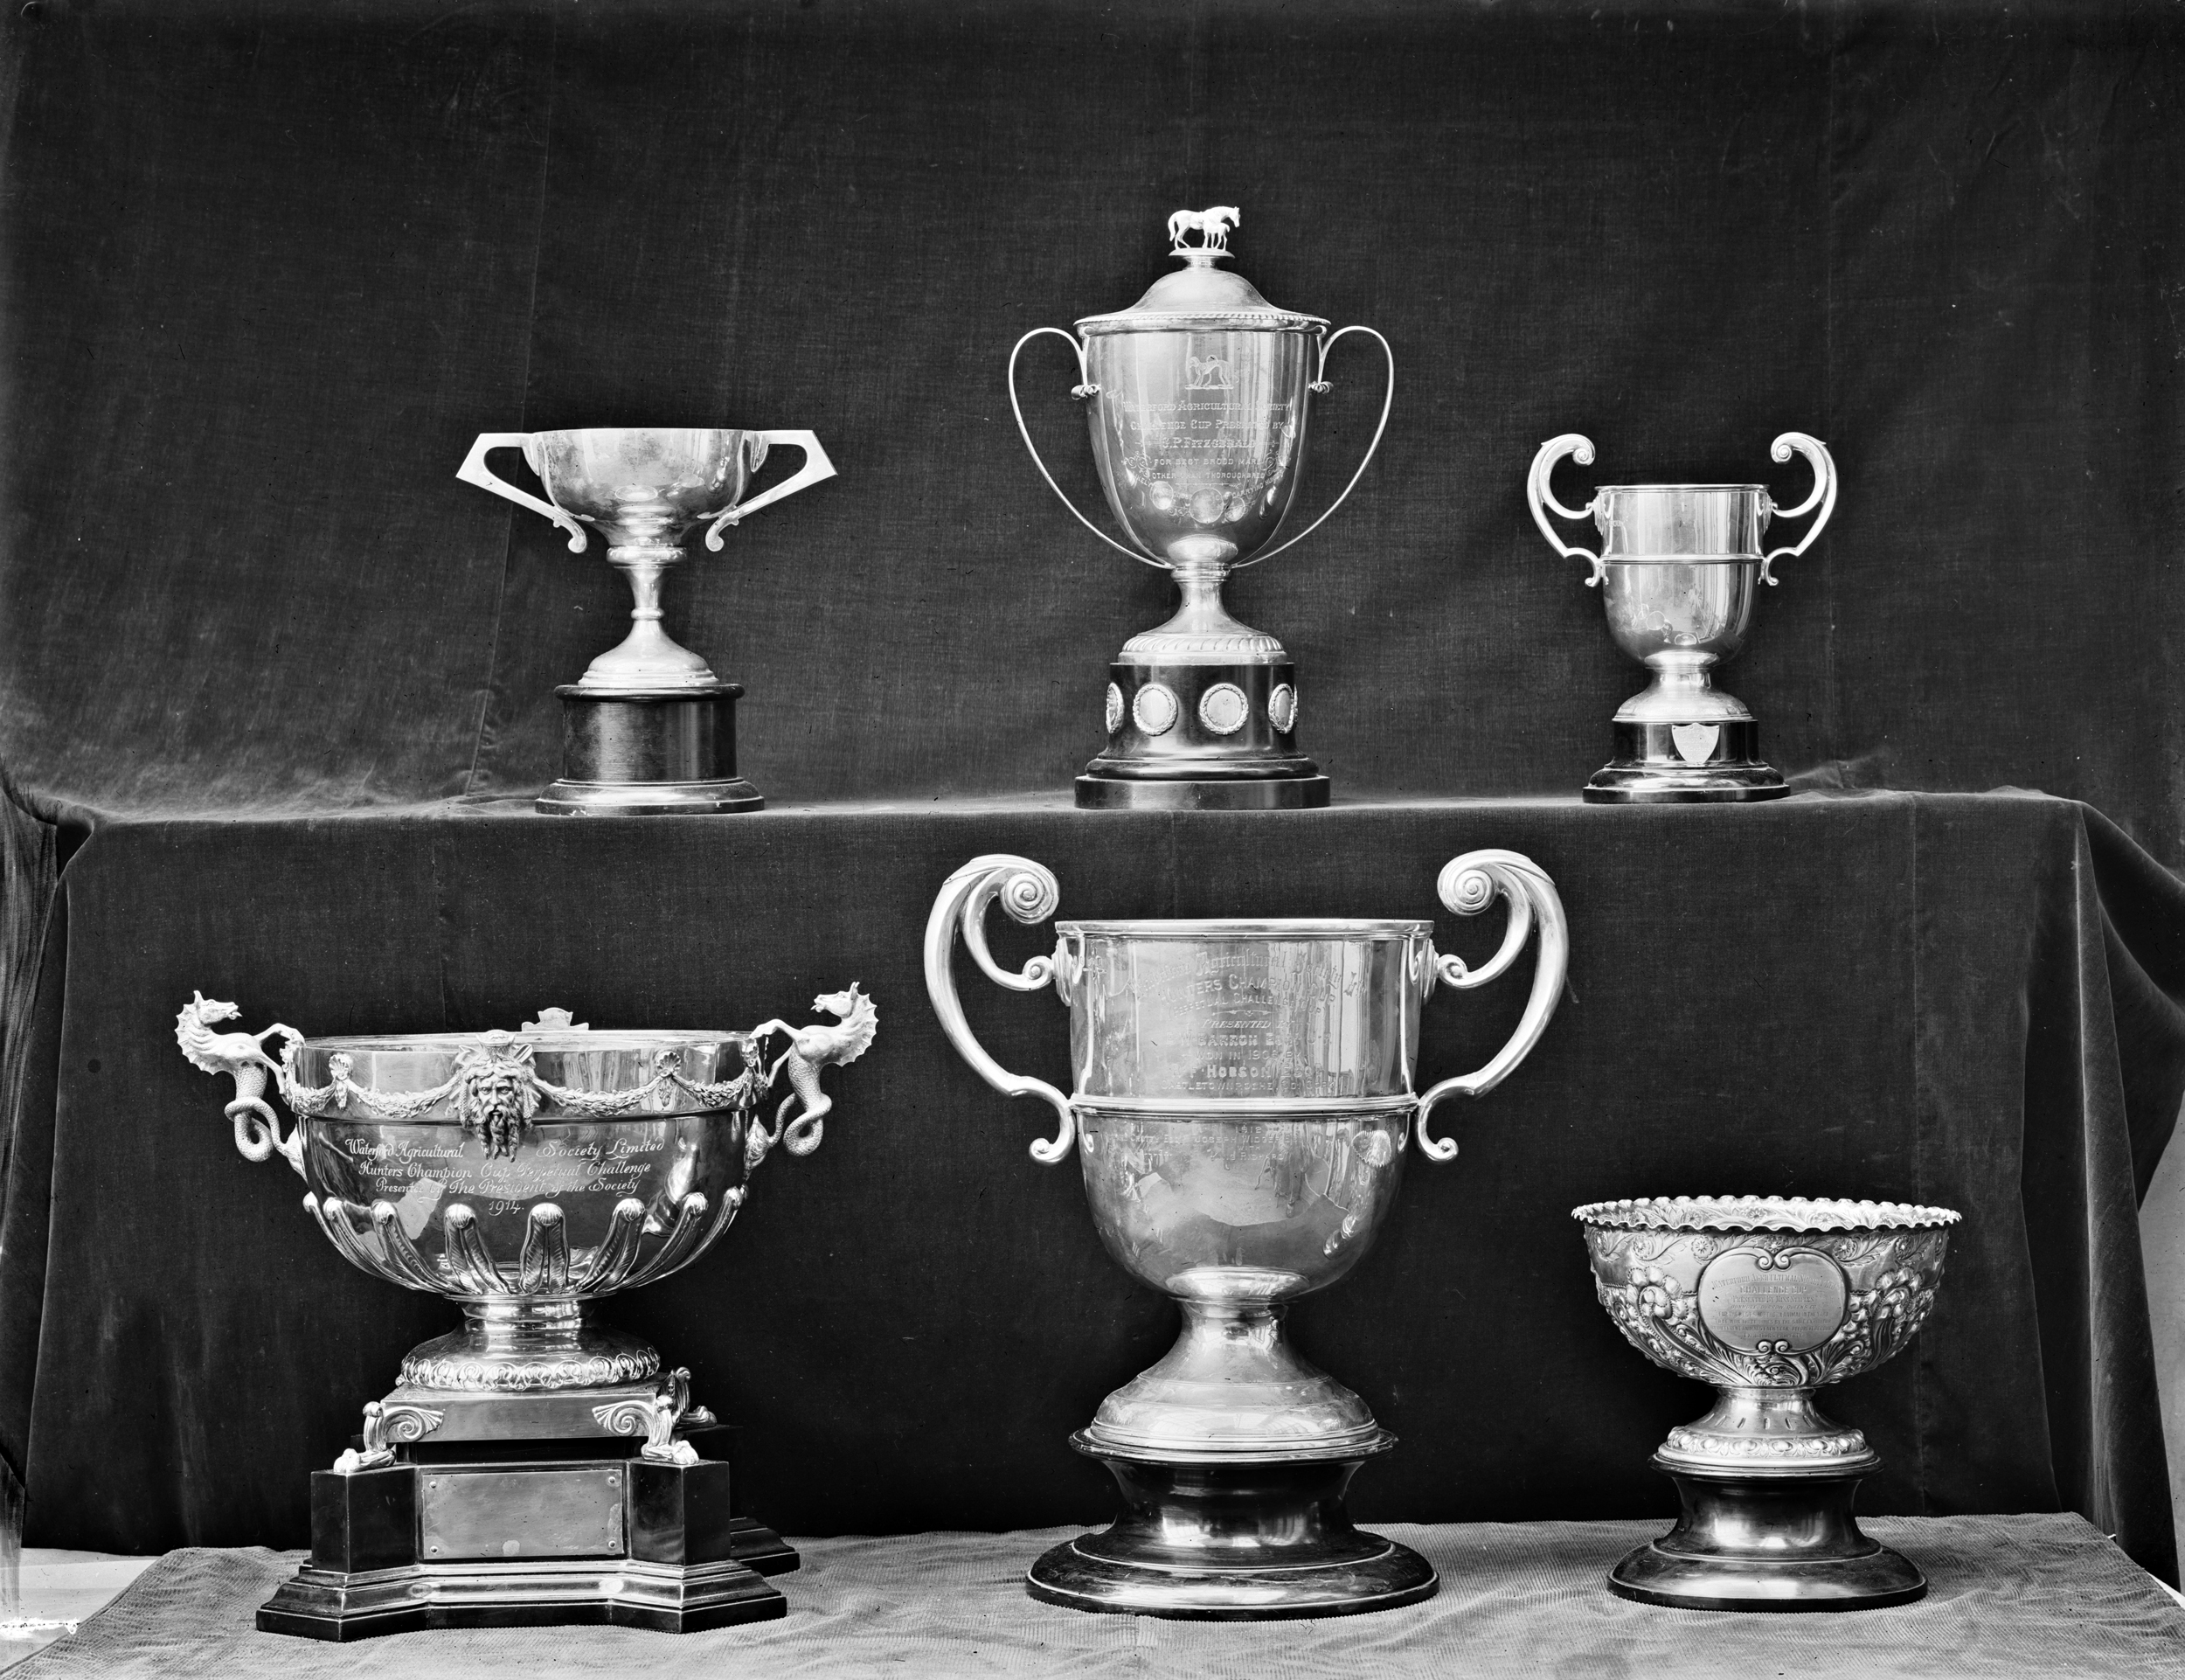 Trophies for the prettiest cows and horses in the show?